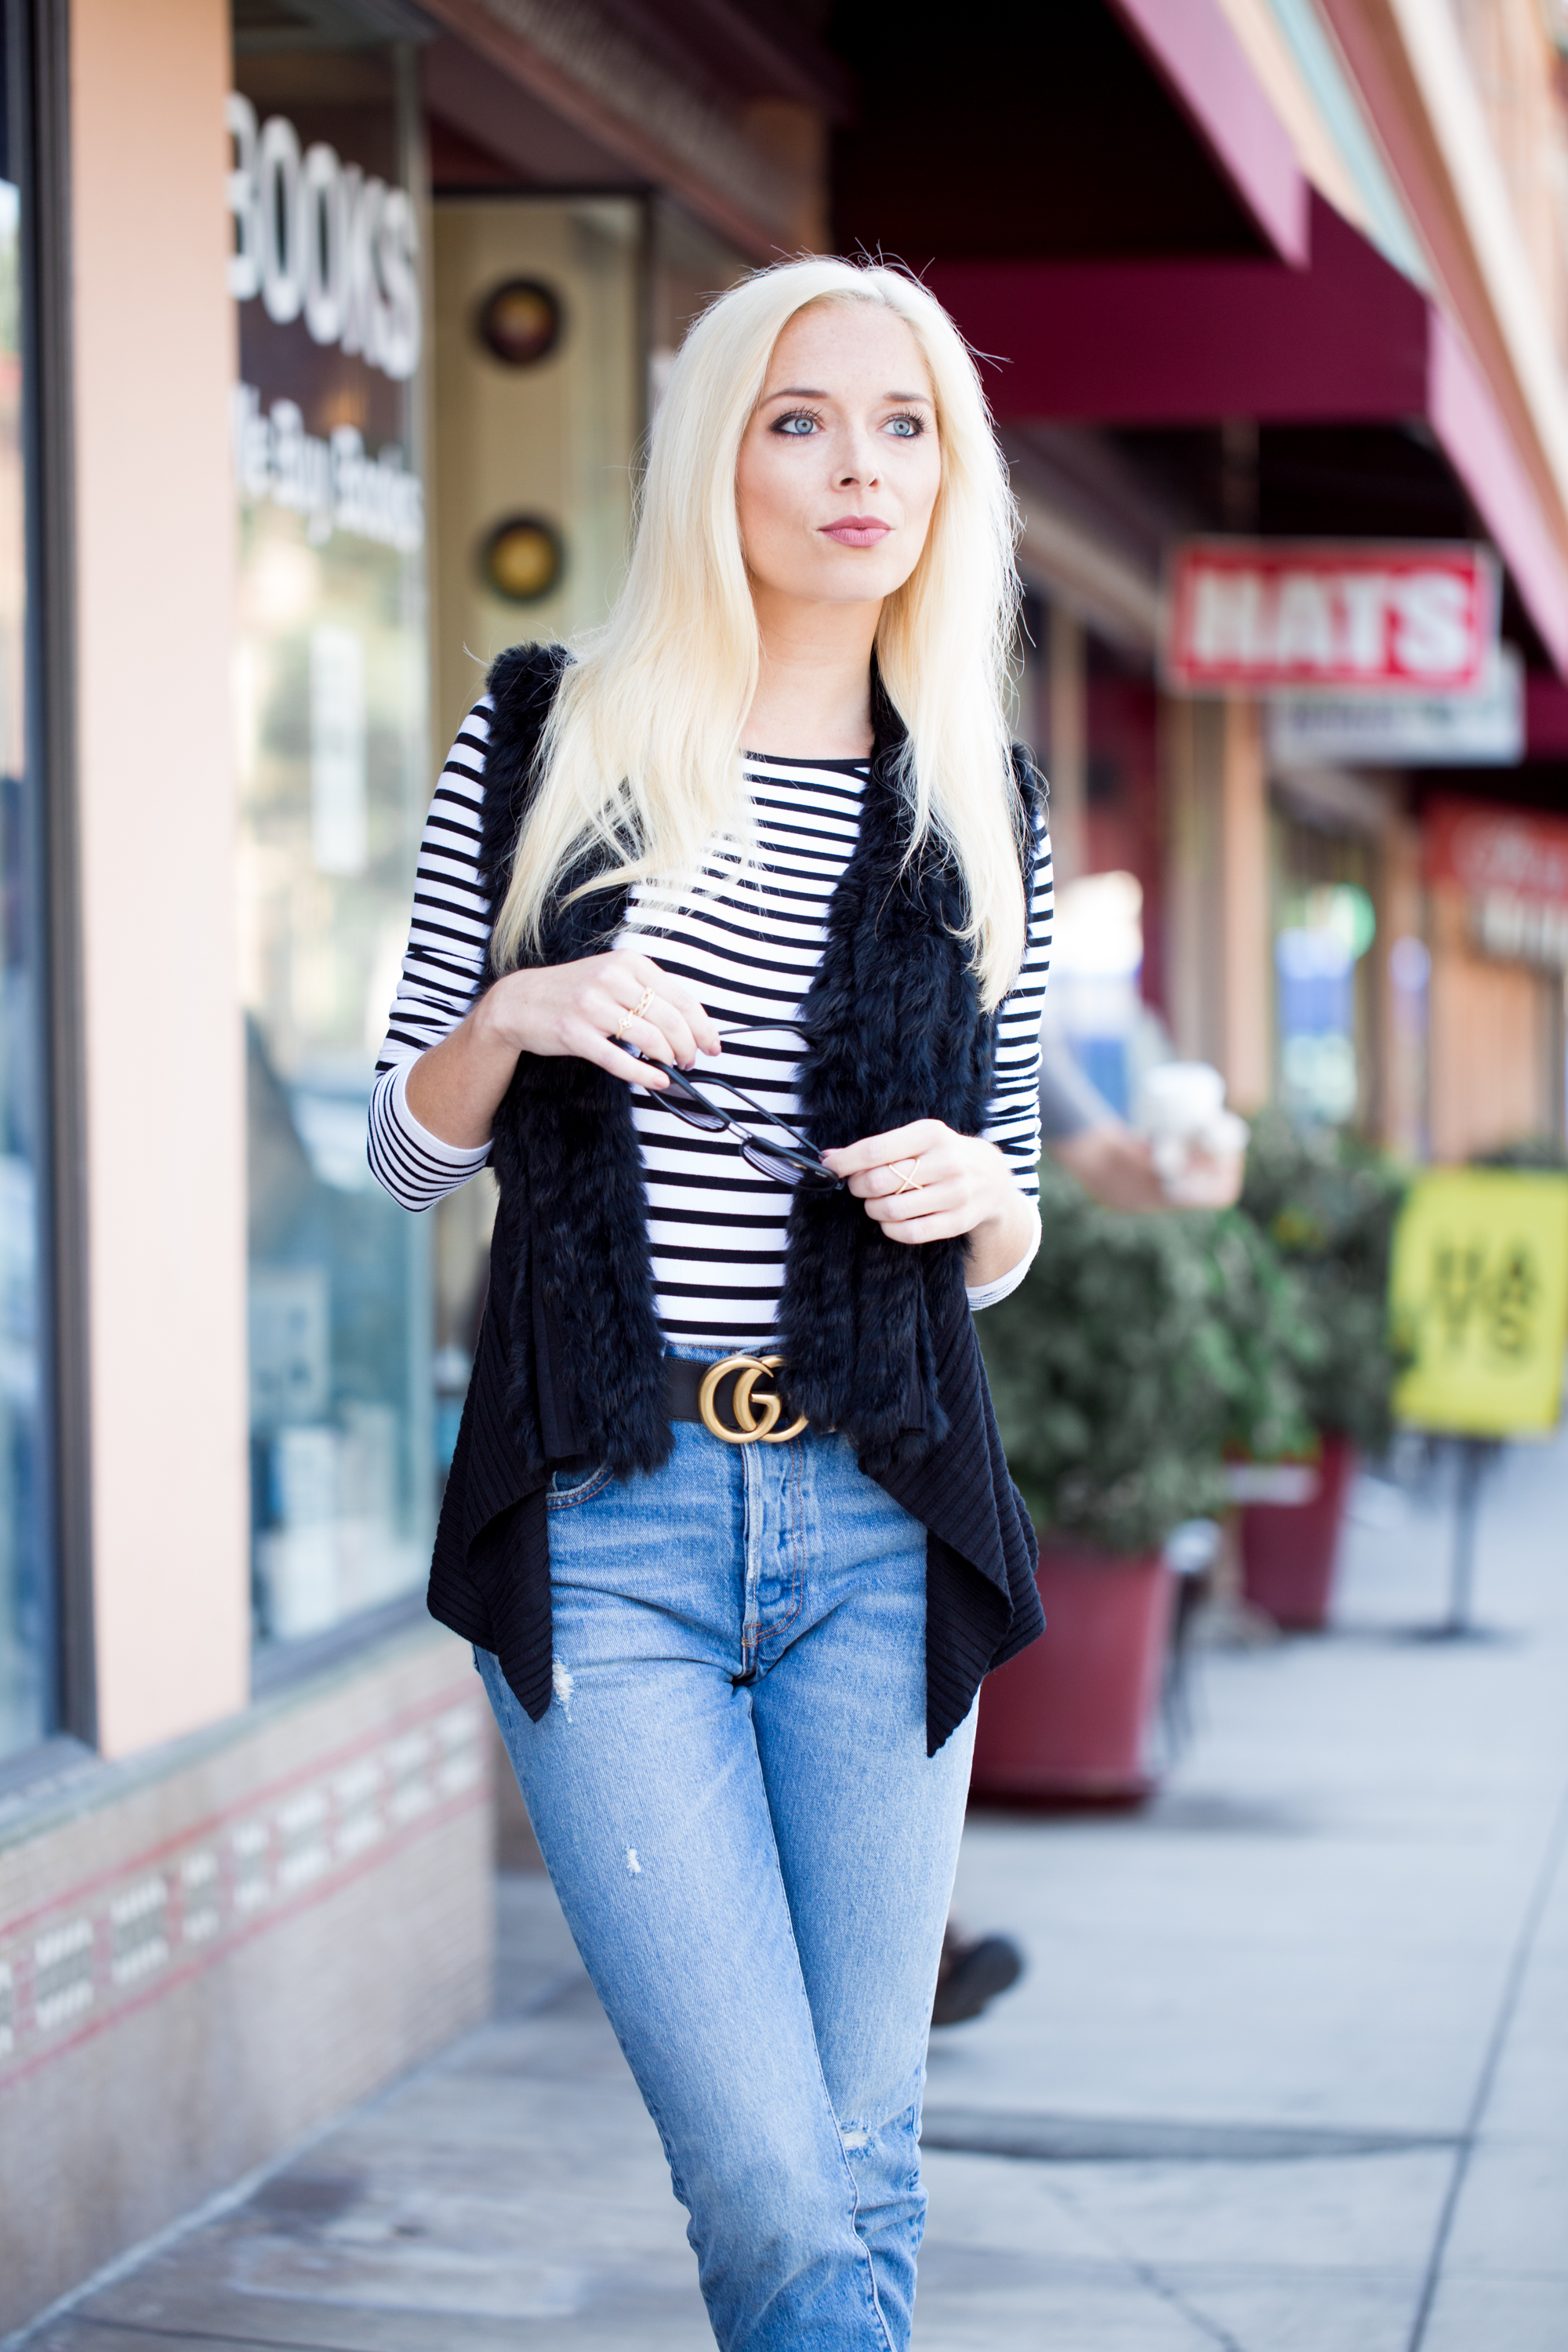 Fur Vests, Stripes and Booties   Midwest to the Best